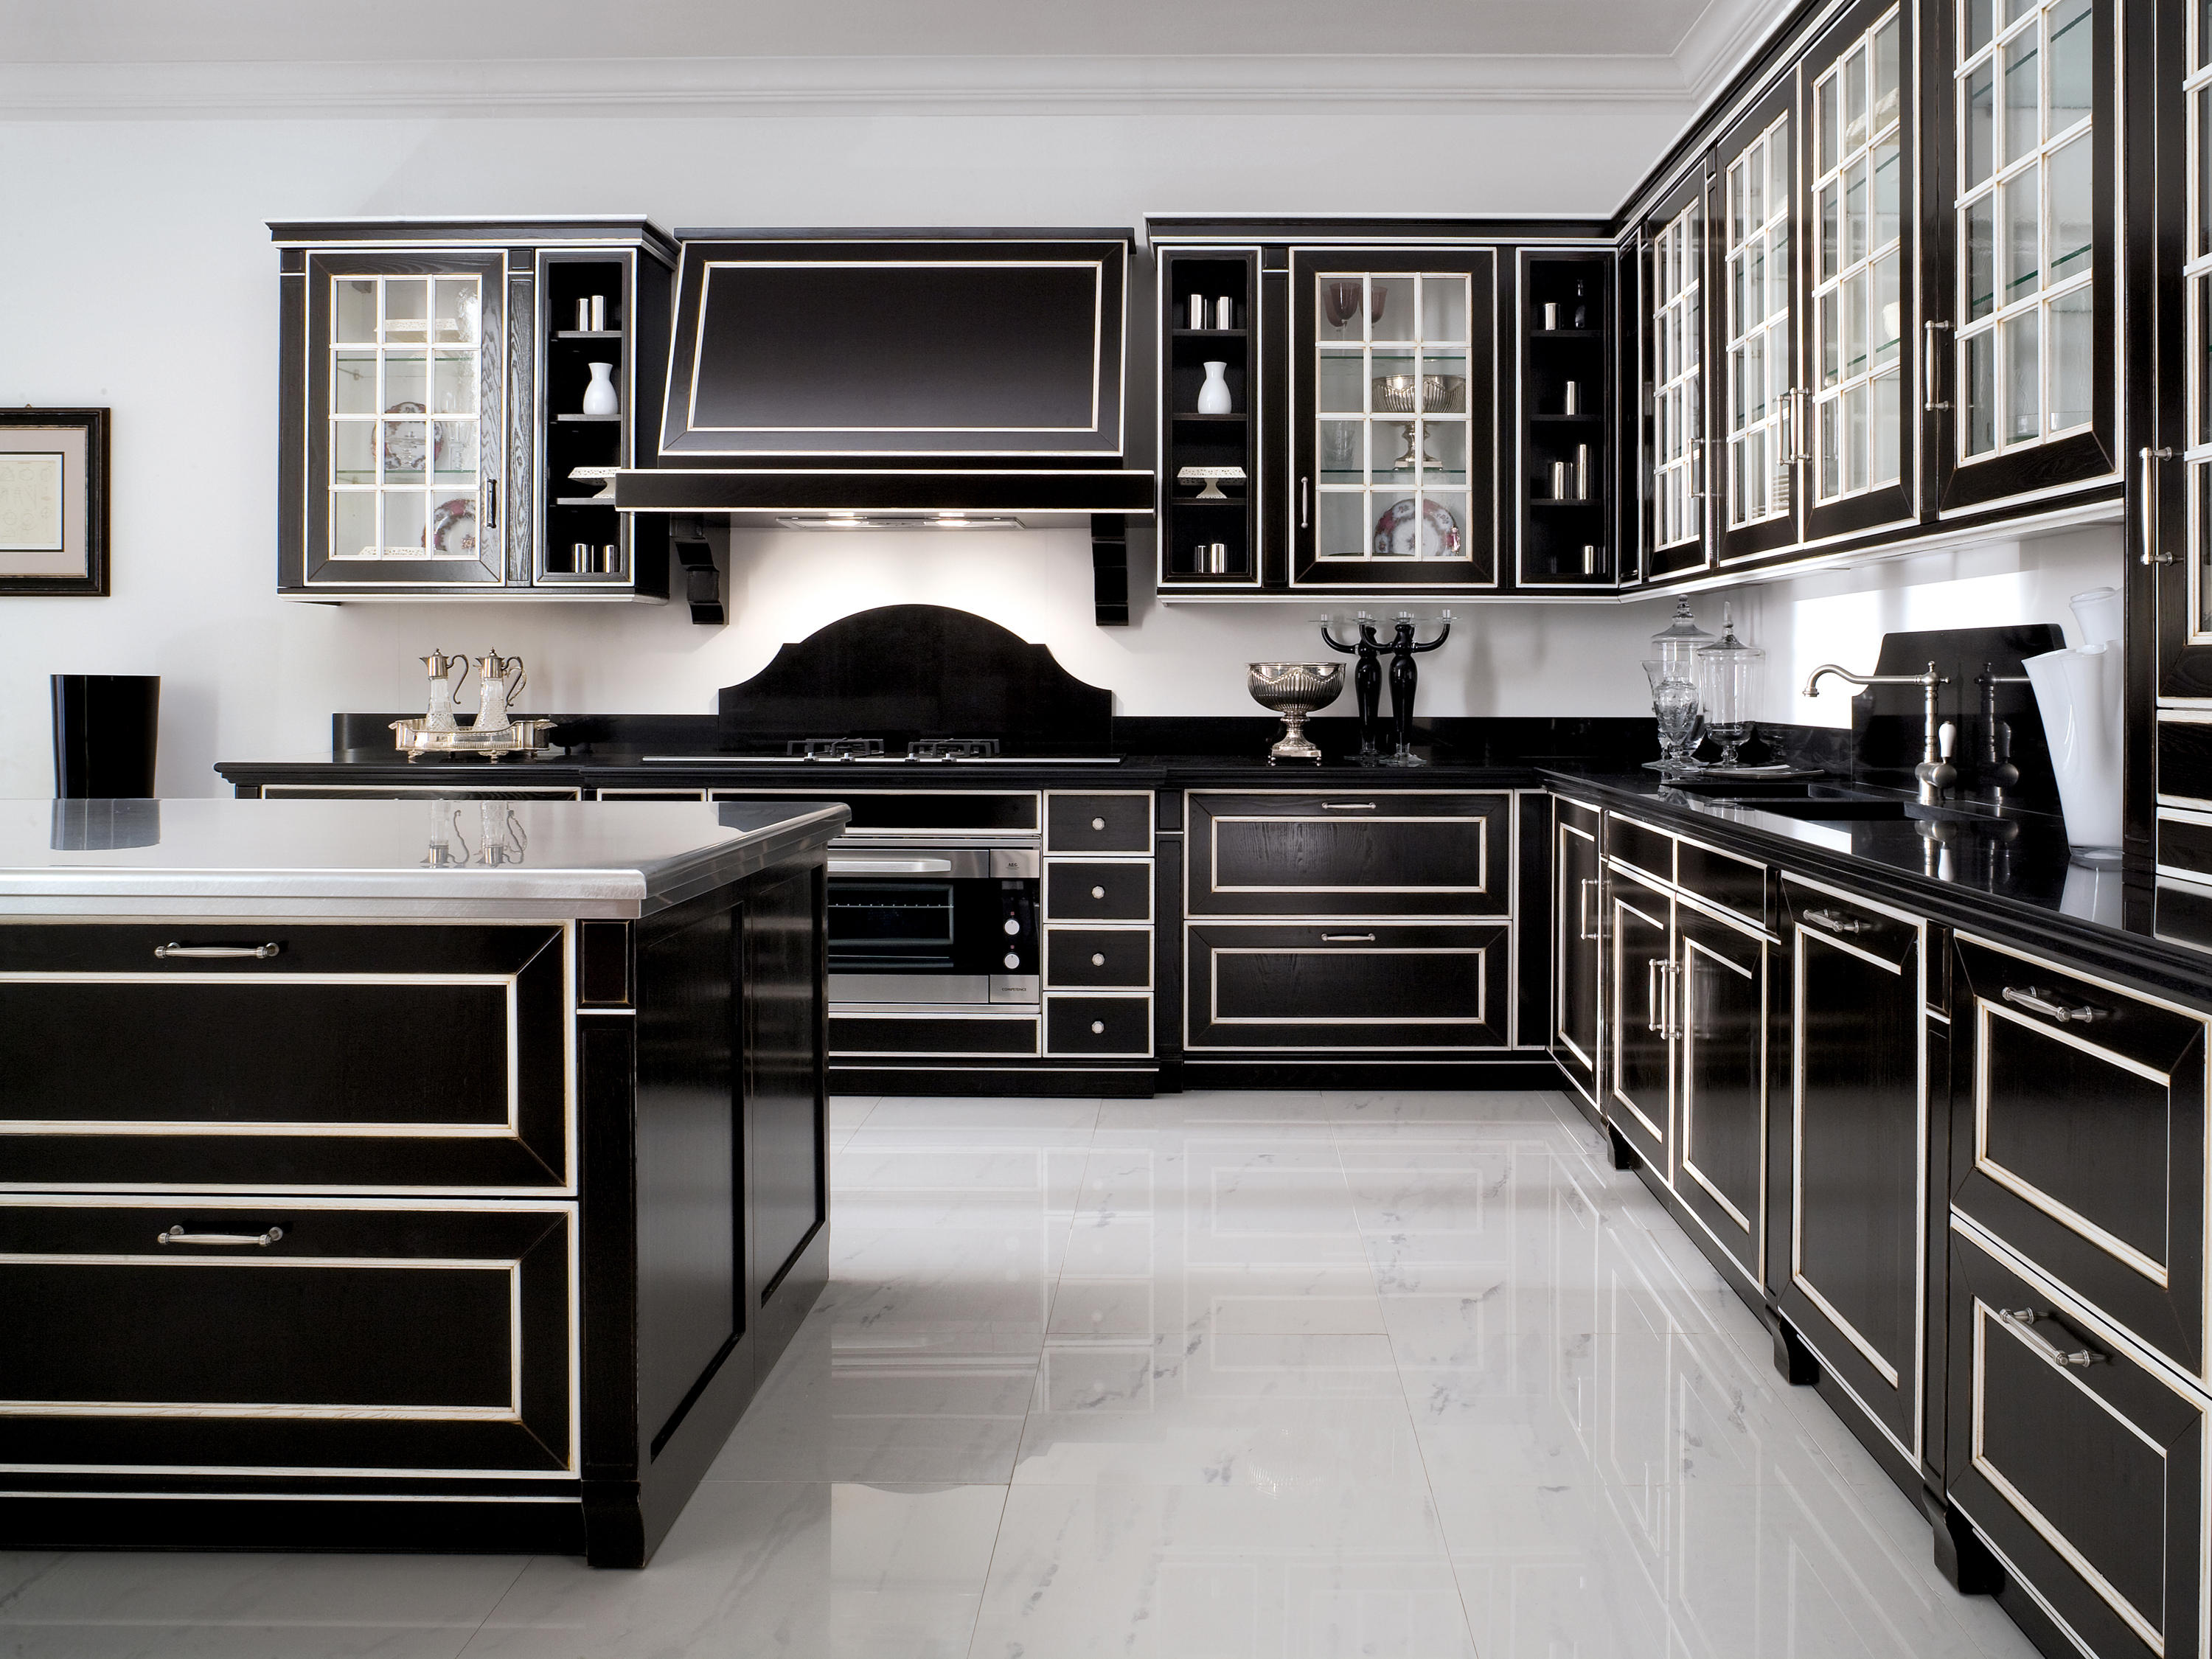 Luxury kitchen fitted kitchens from ged arredamenti - Cucine lussuose moderne ...